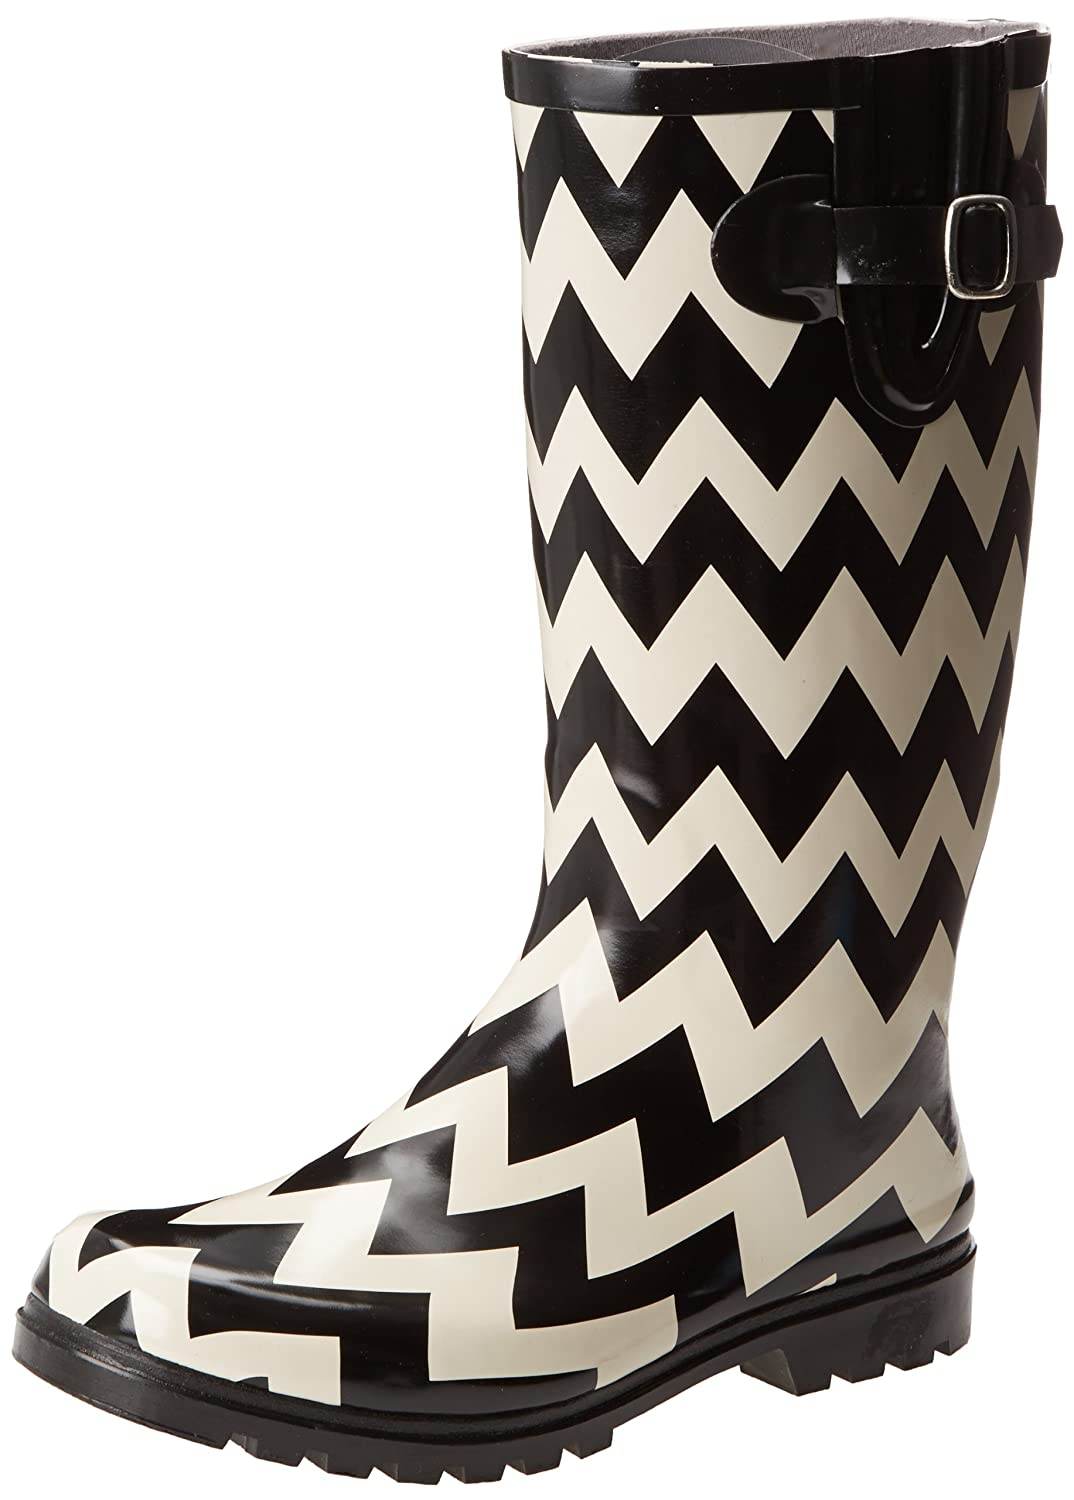 Nomad Women's Puddles Rain Boot B00E80X92Y 5 B(M) US|Black/White Chevron